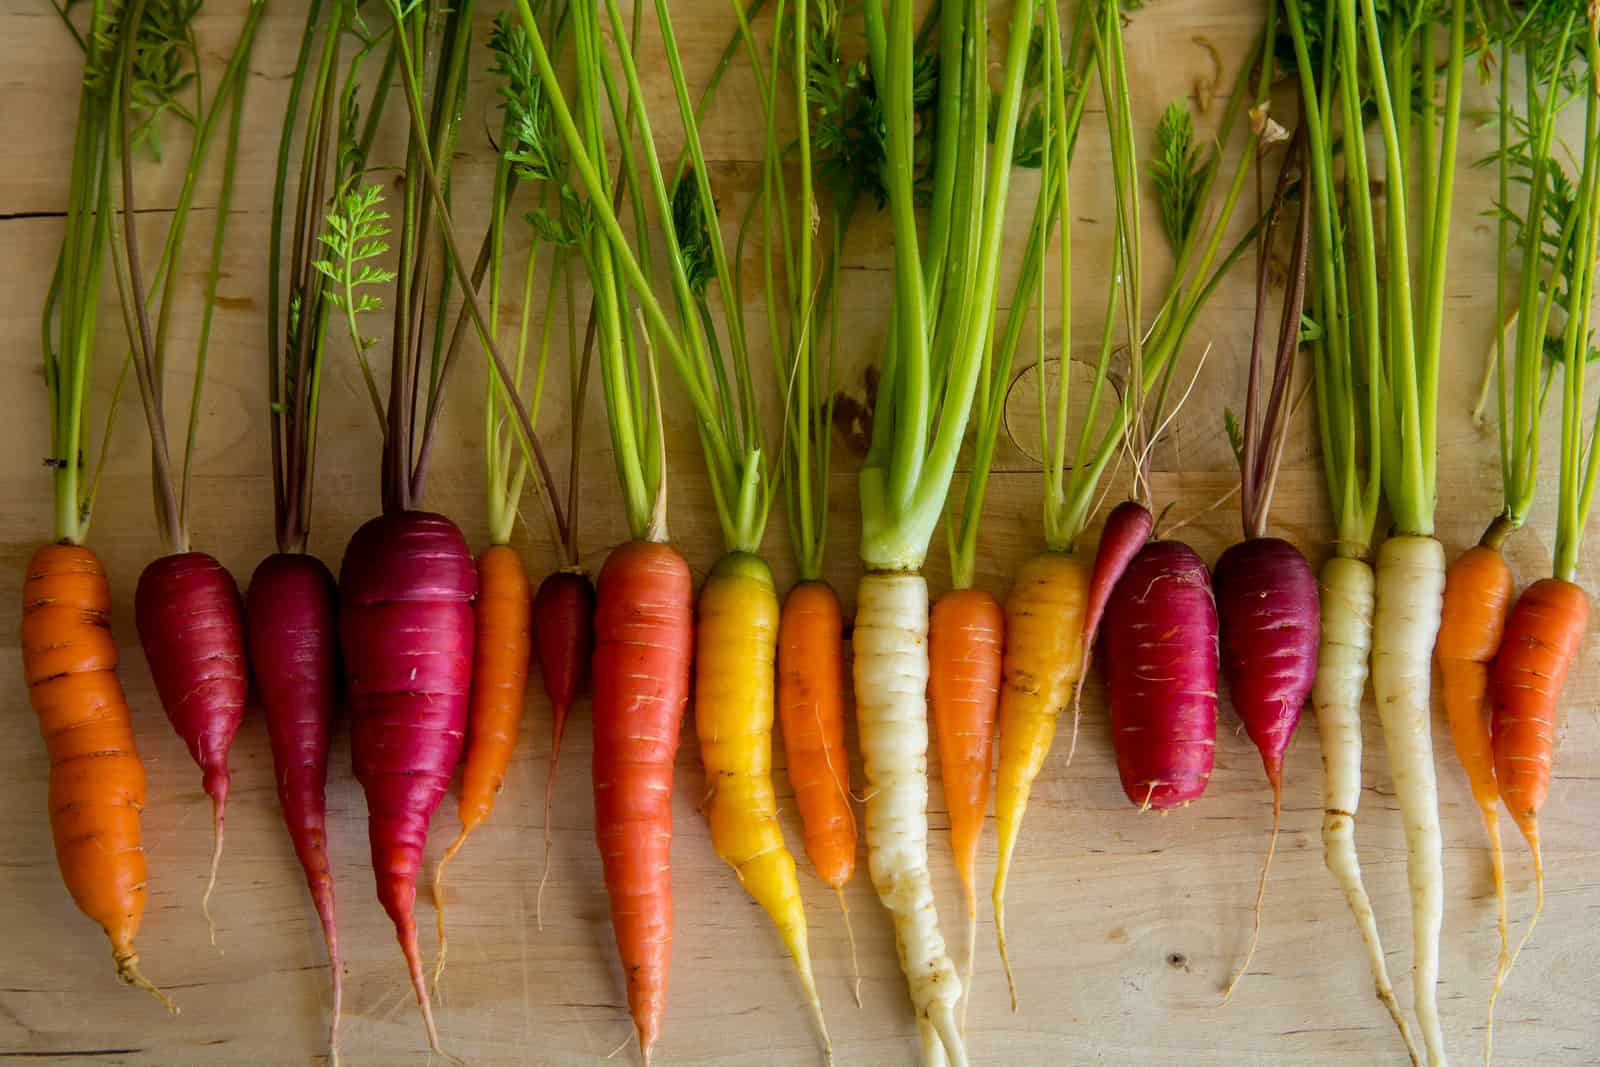 Carrot varieties are many